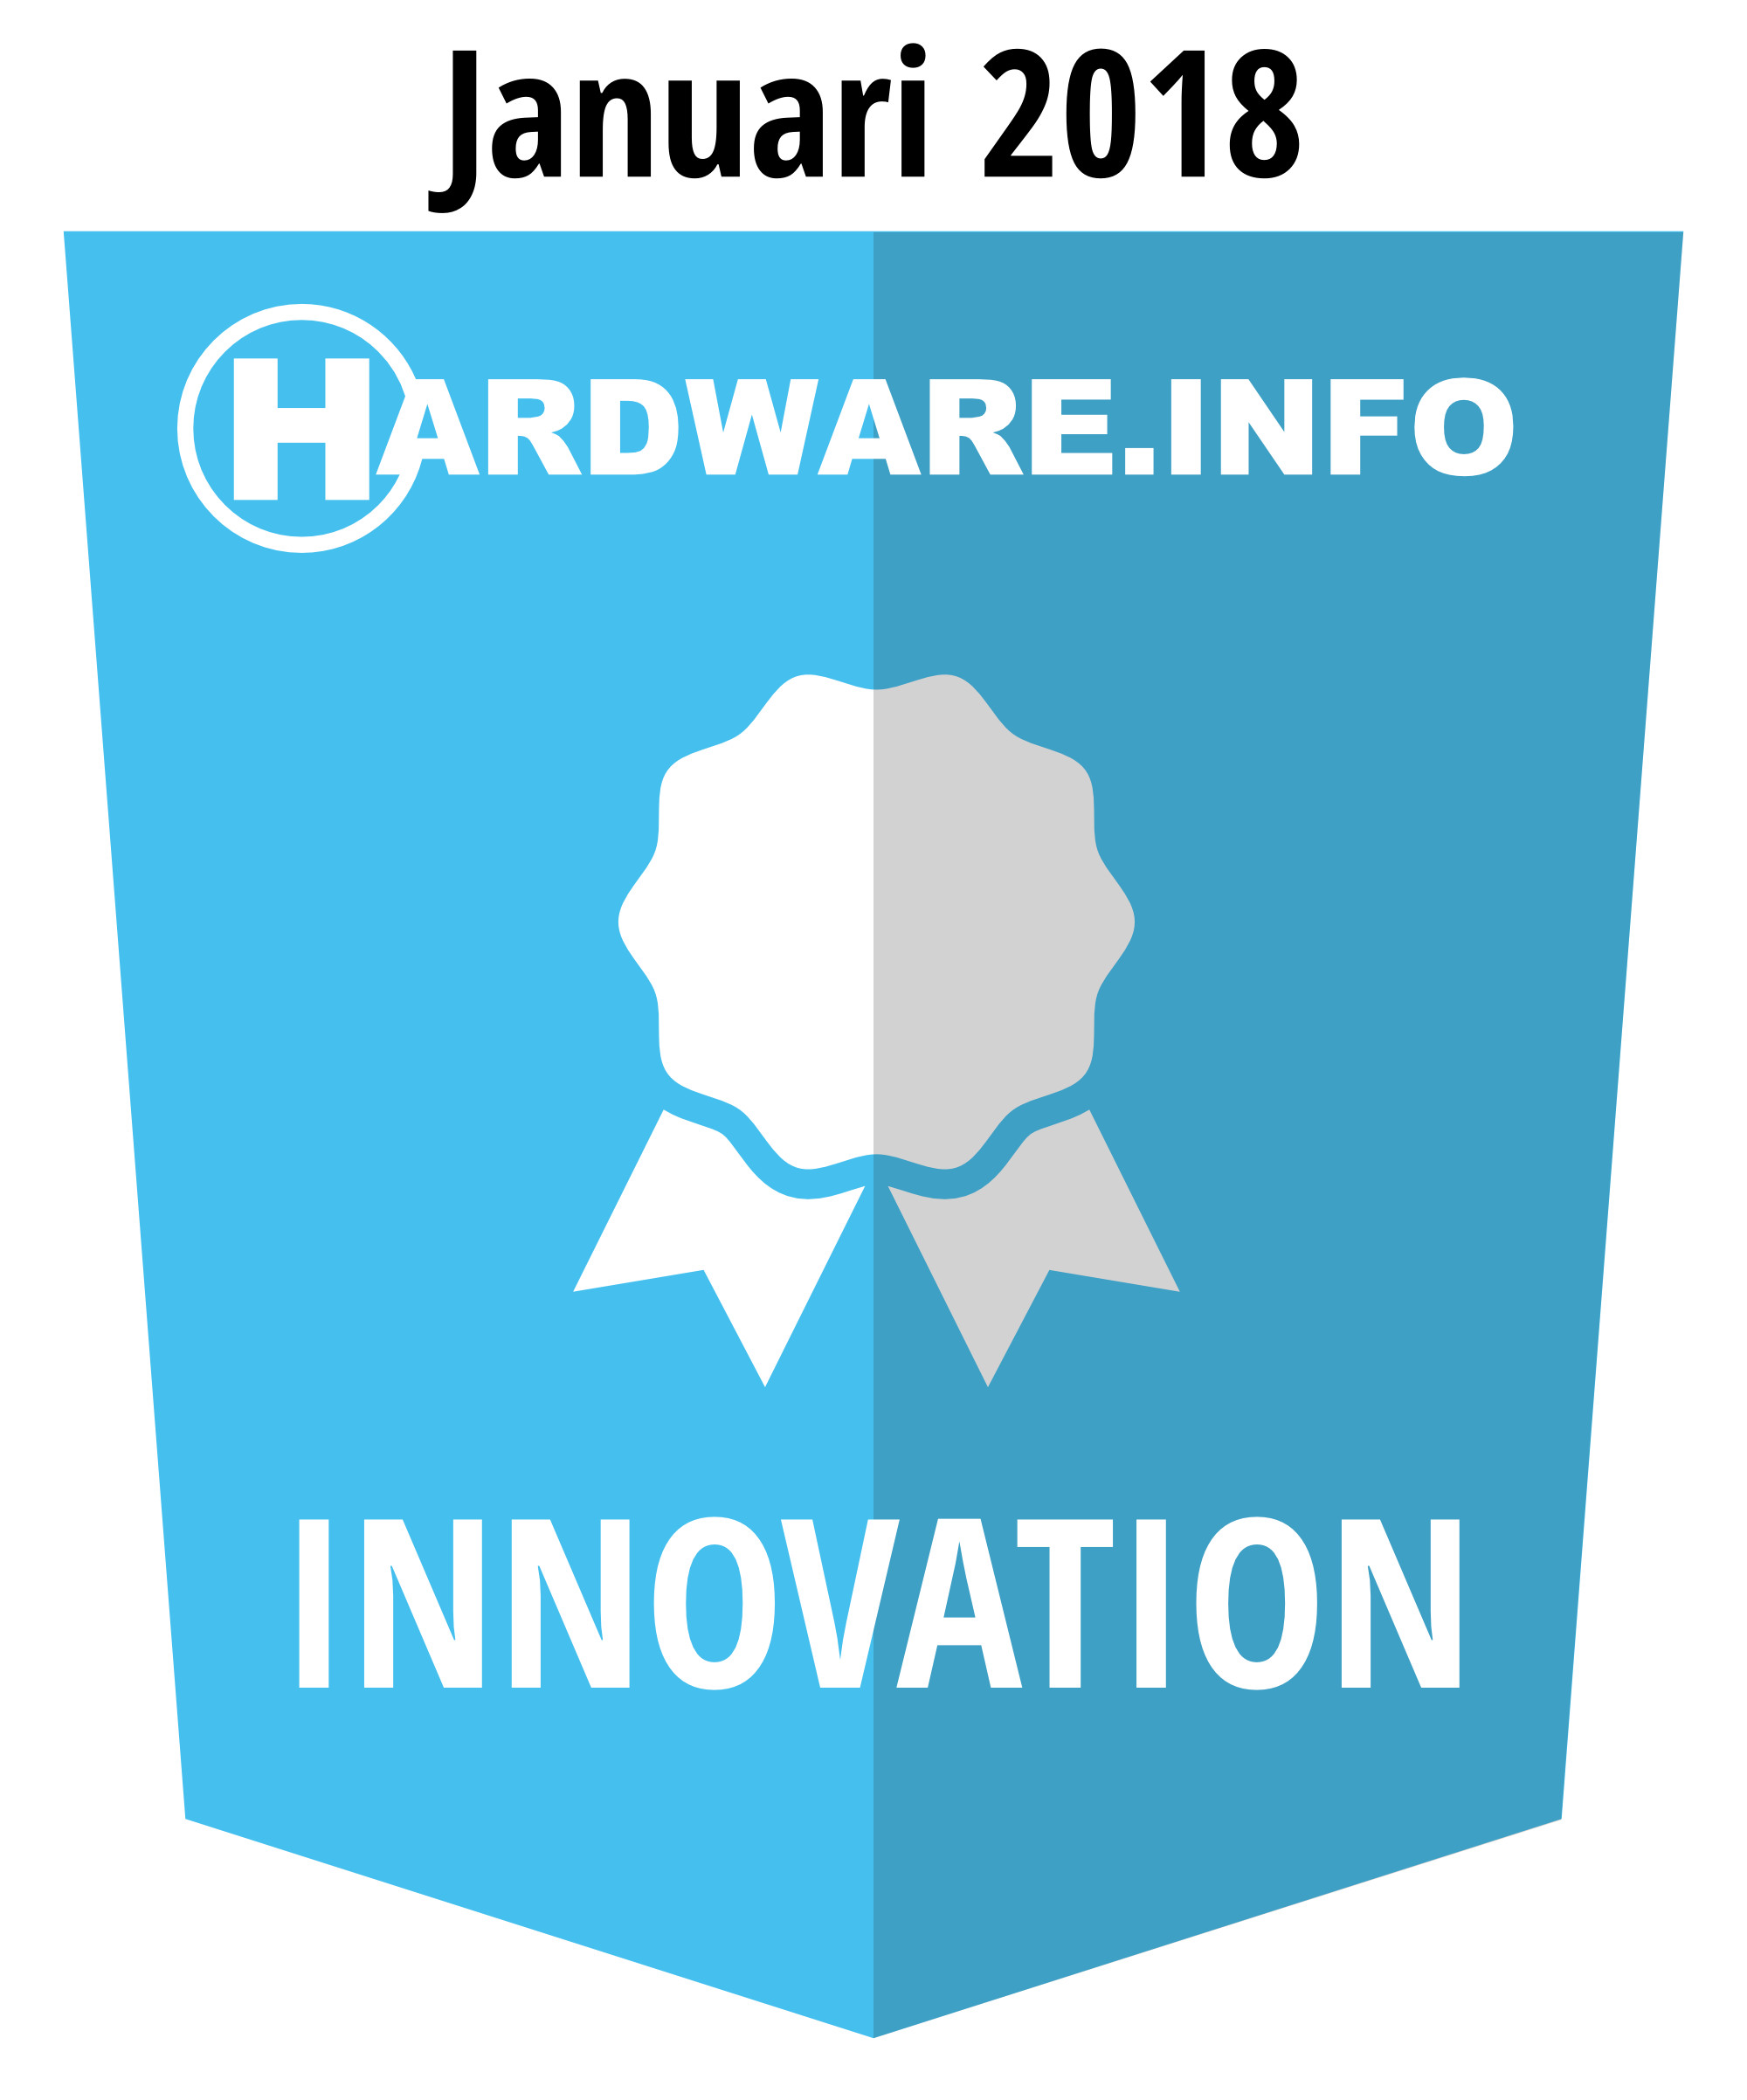 Hardware.info Innovation award 01-2018